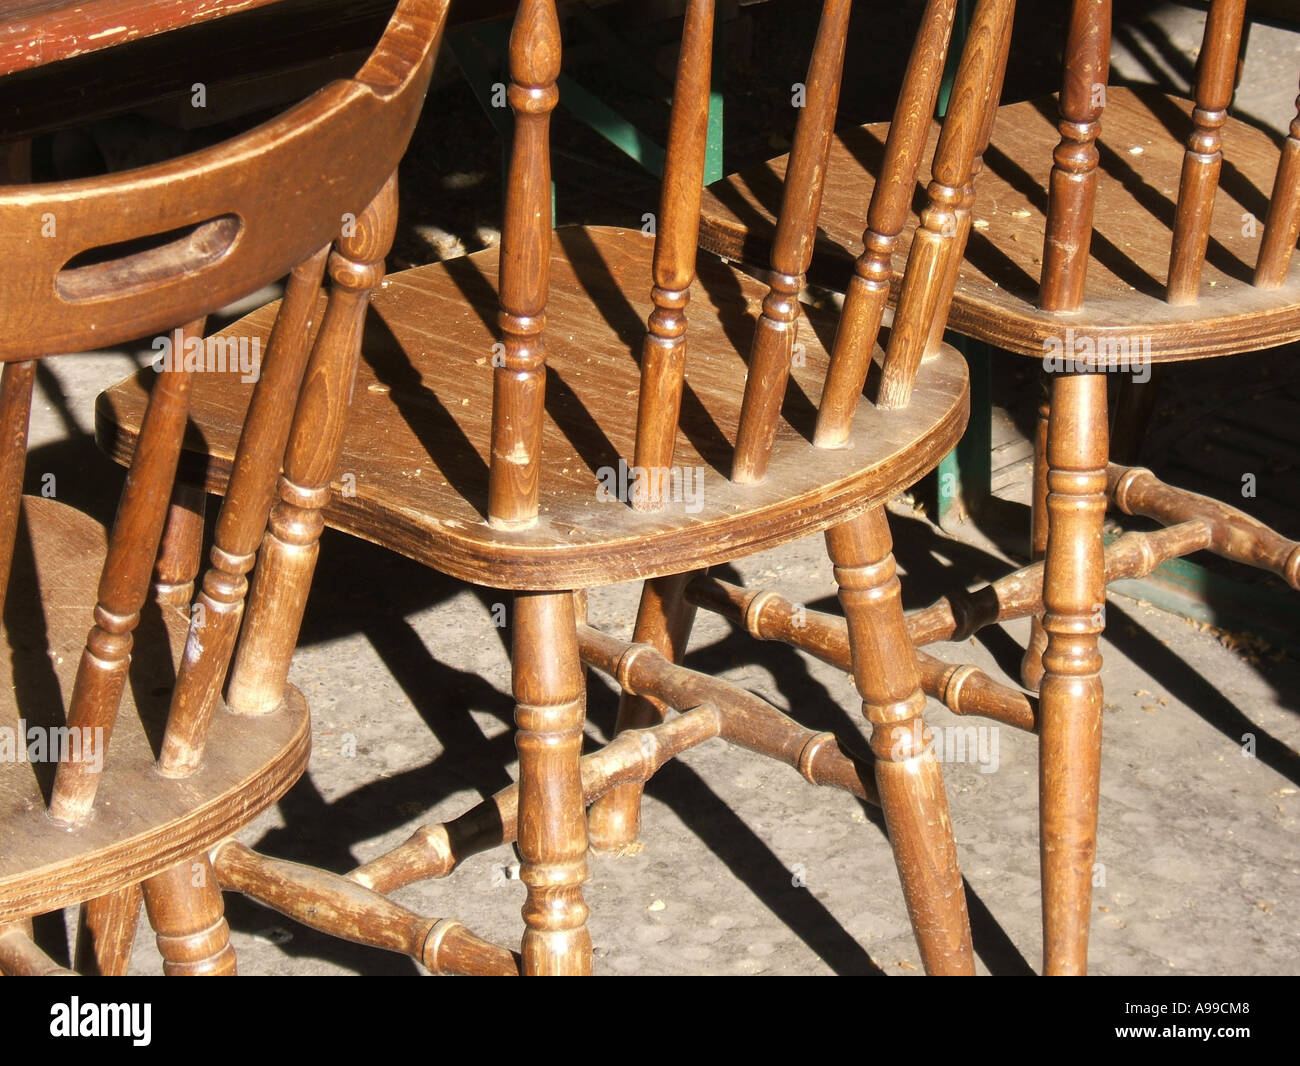 Old Fashioned Wooden Chairs By Table Stock Photo 7025223 Alamy